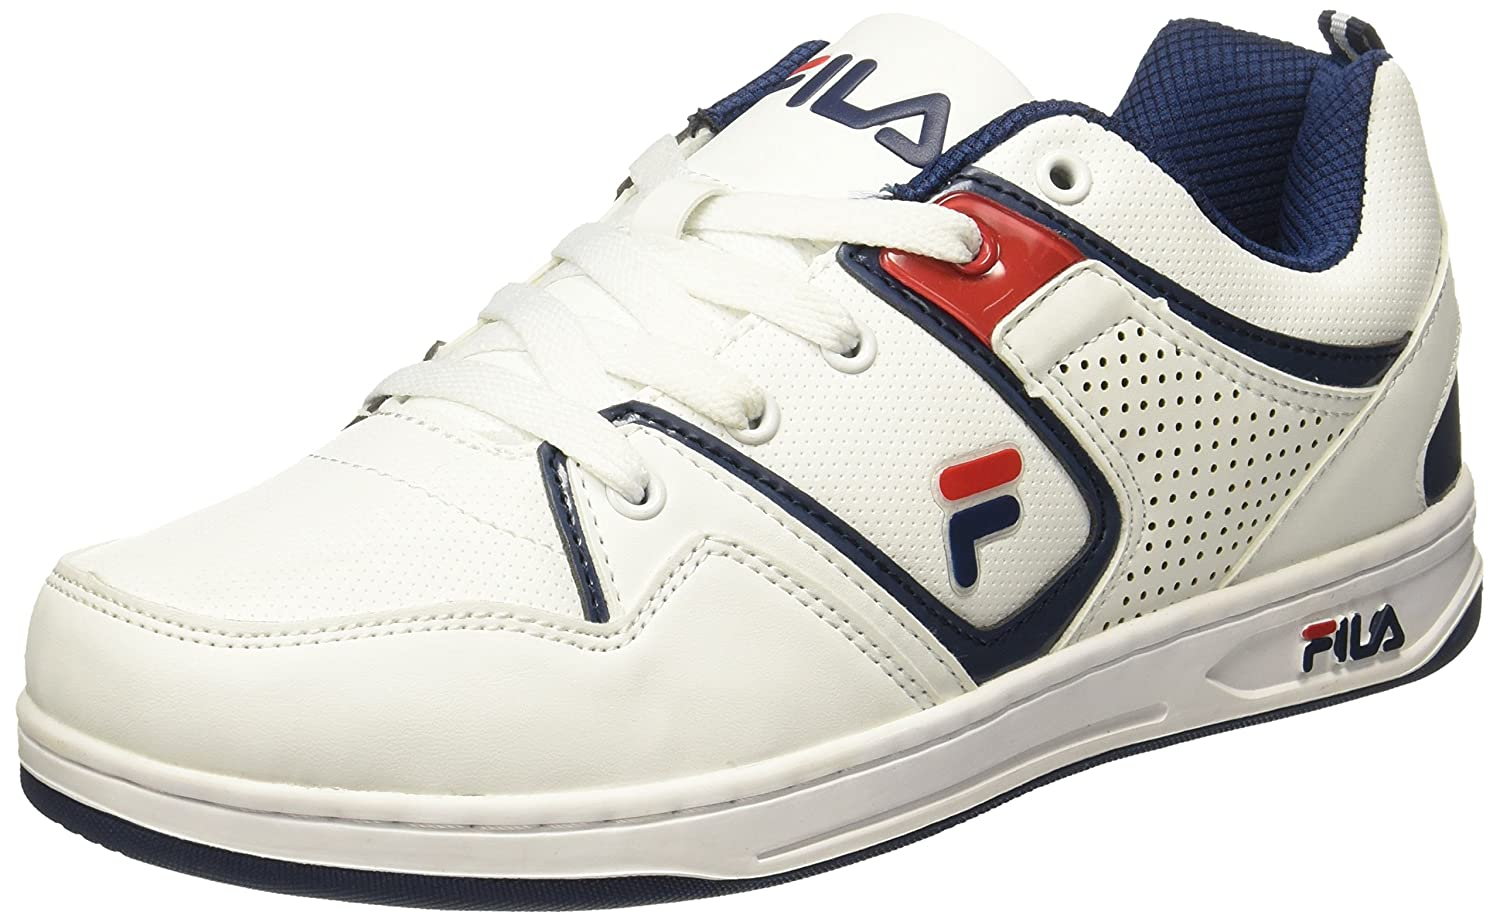 Navy and Fila Red Sneakers